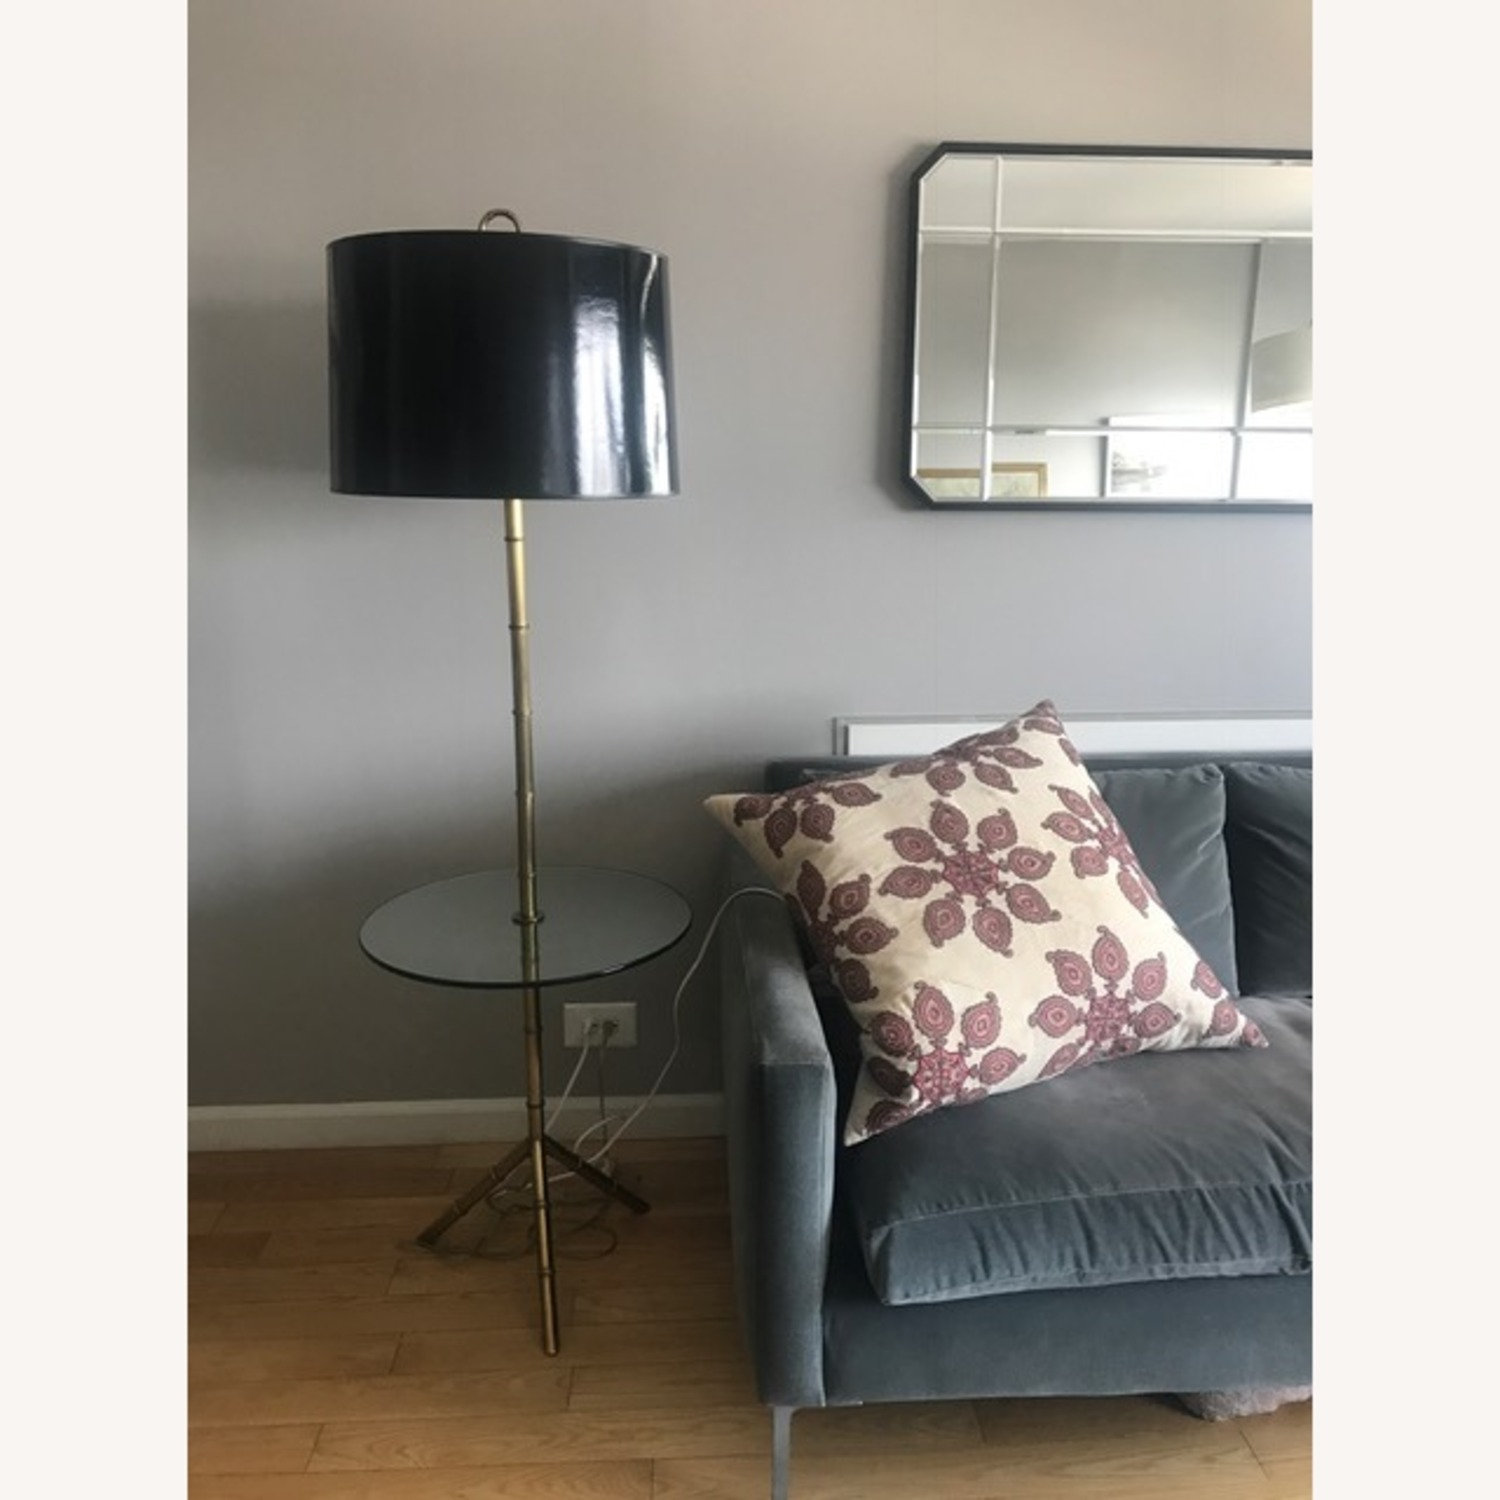 Jonathan Adler Meurice Floor Lamp with Table - image-1